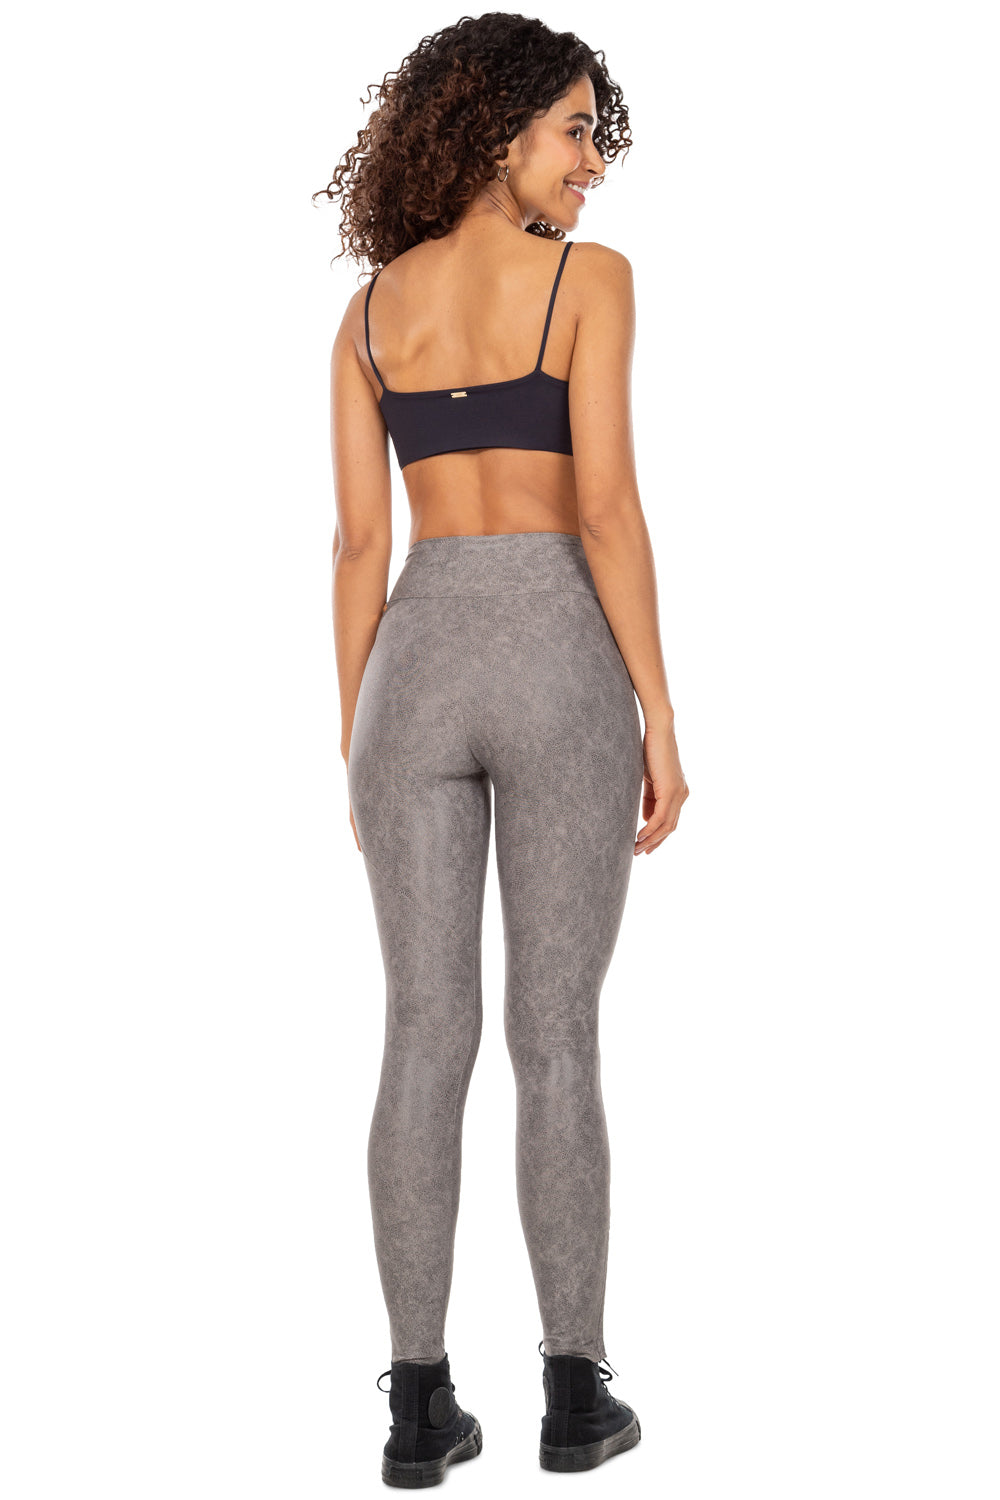 Urban Up Style Legging 2